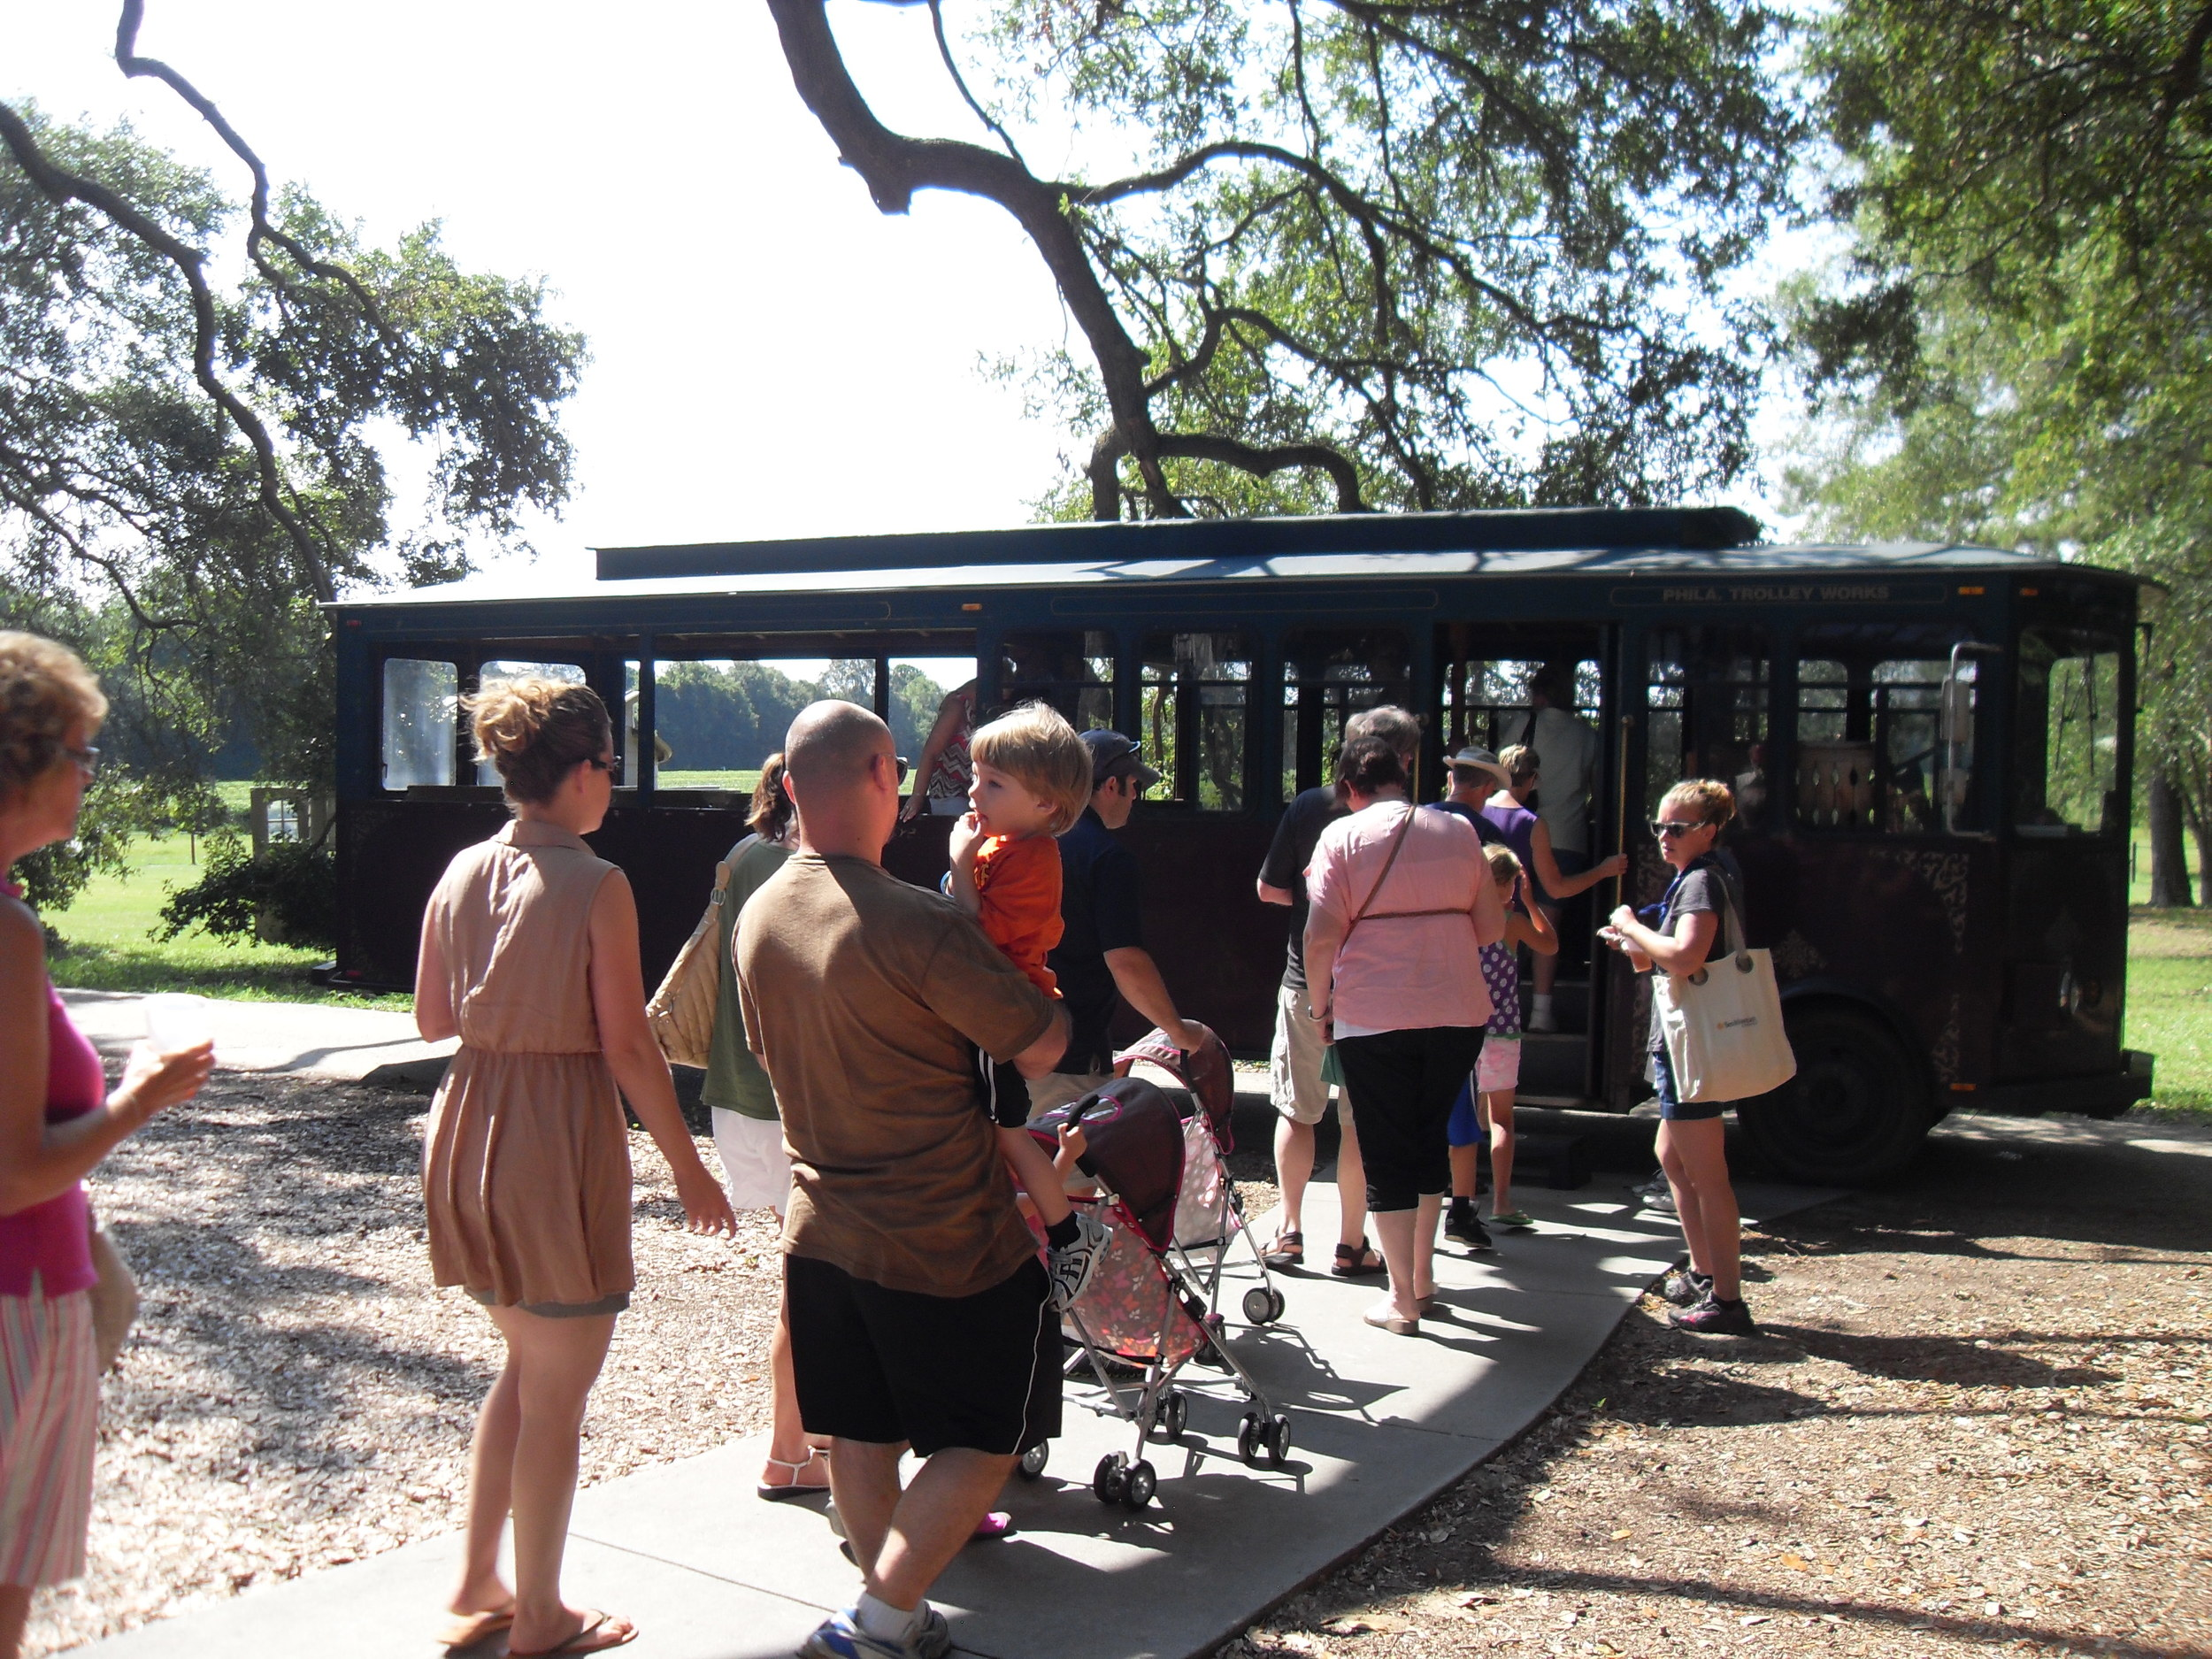 Guests in line to enjoy a scenic trolley tour